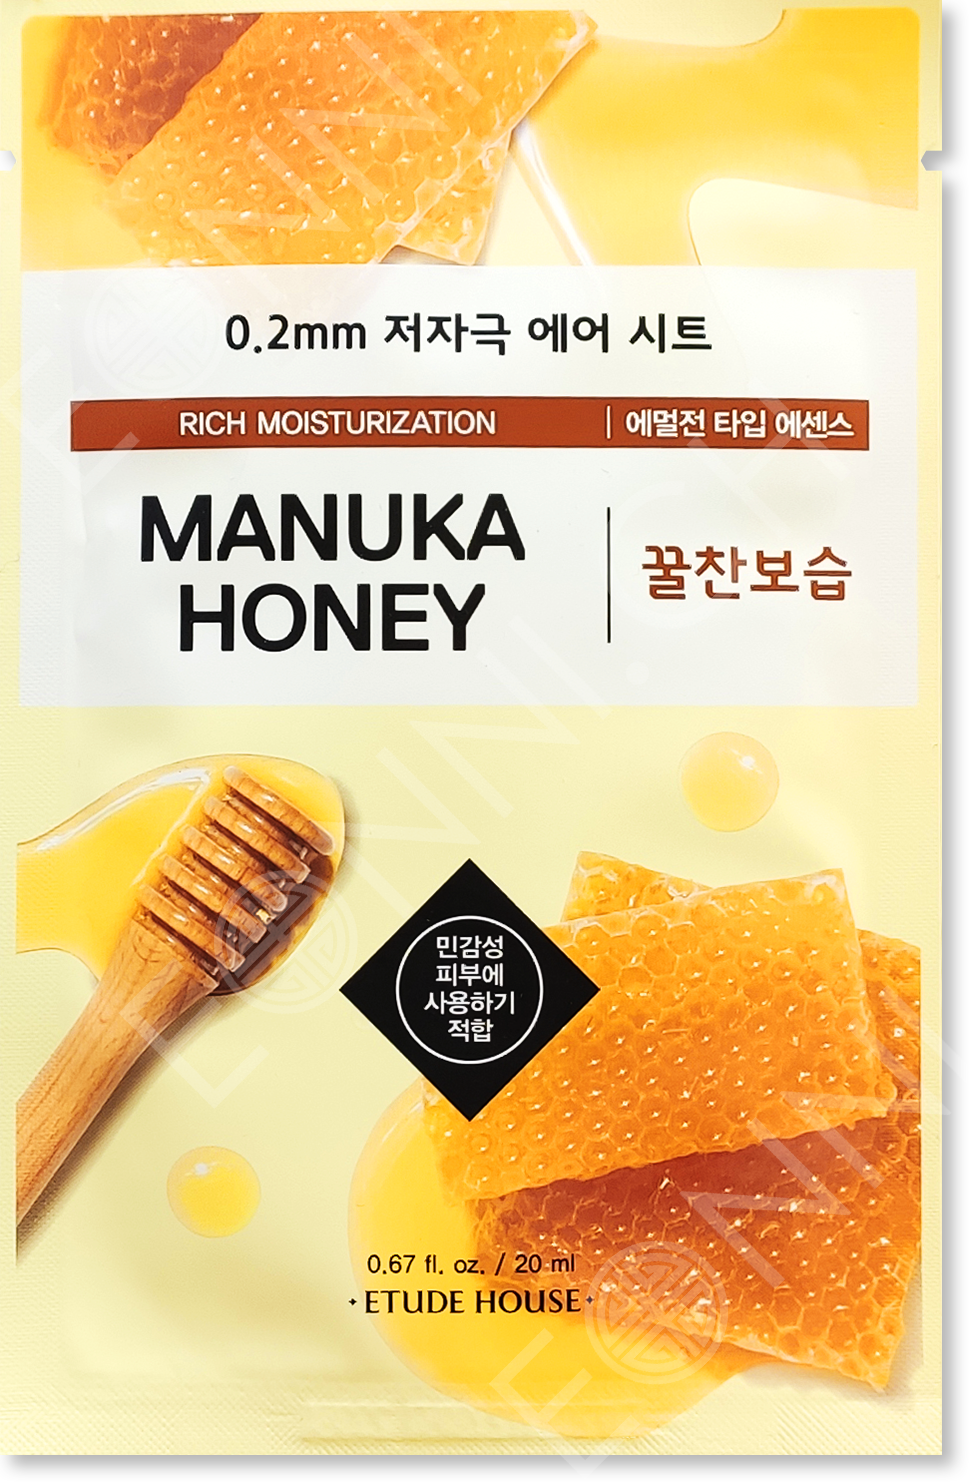 Etude House 0.2mm Therapy Air Mask Manuka Honig Tuchmaske